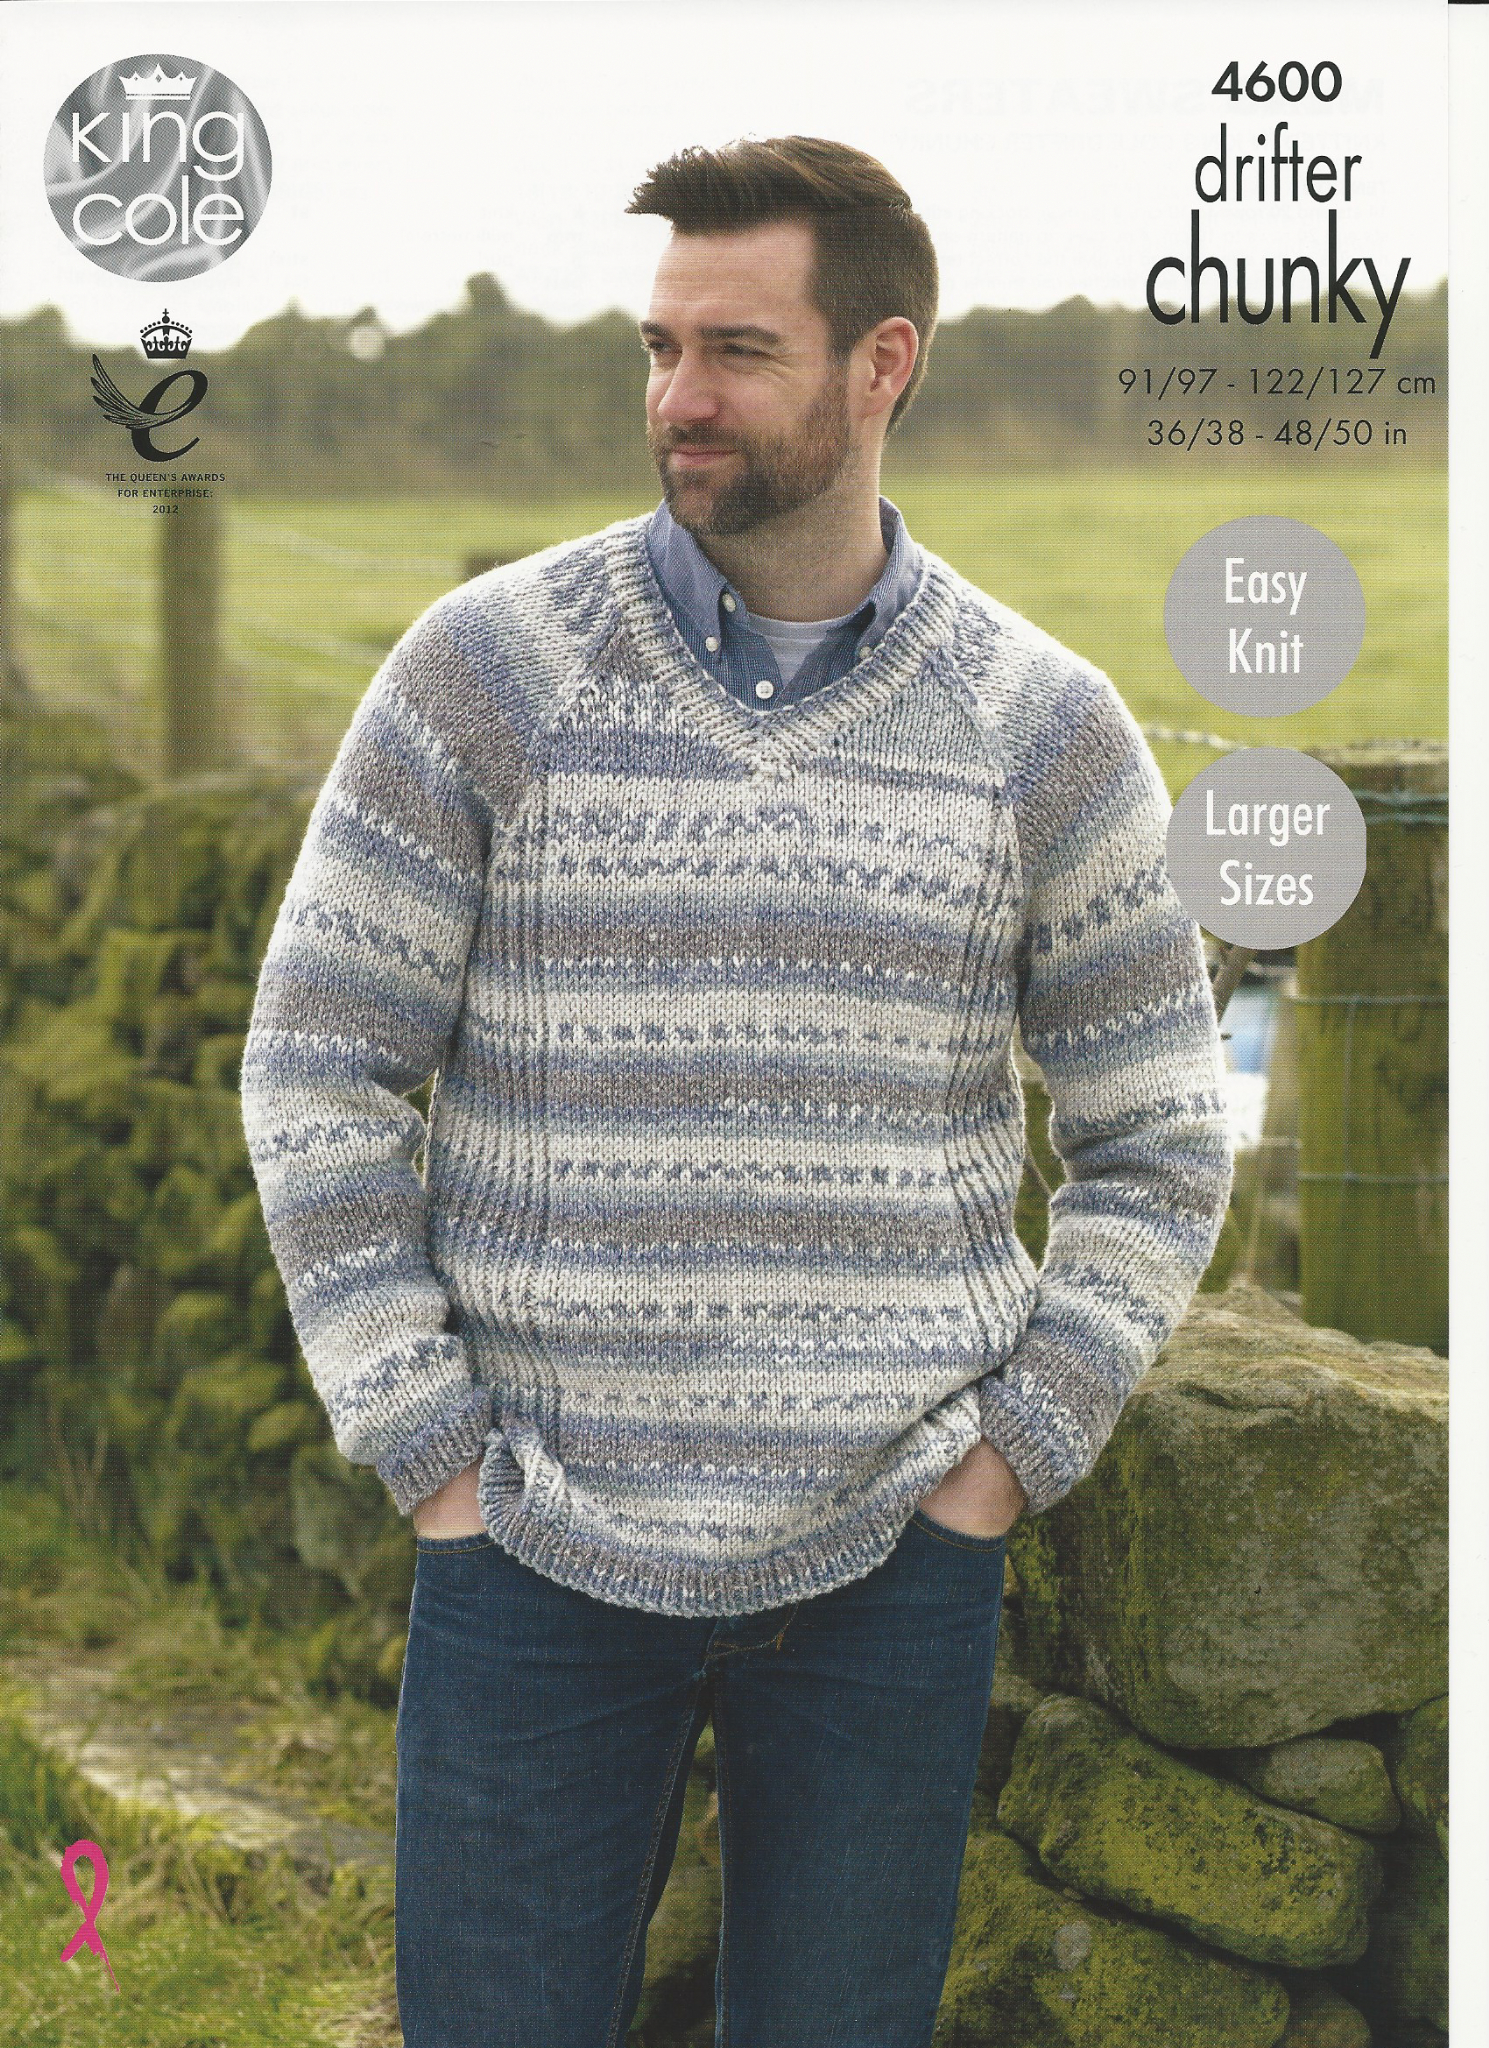 Mens Knit Patterns King Cole Mens Sweaters Knitting Pattern In Drifter Chunky 4600